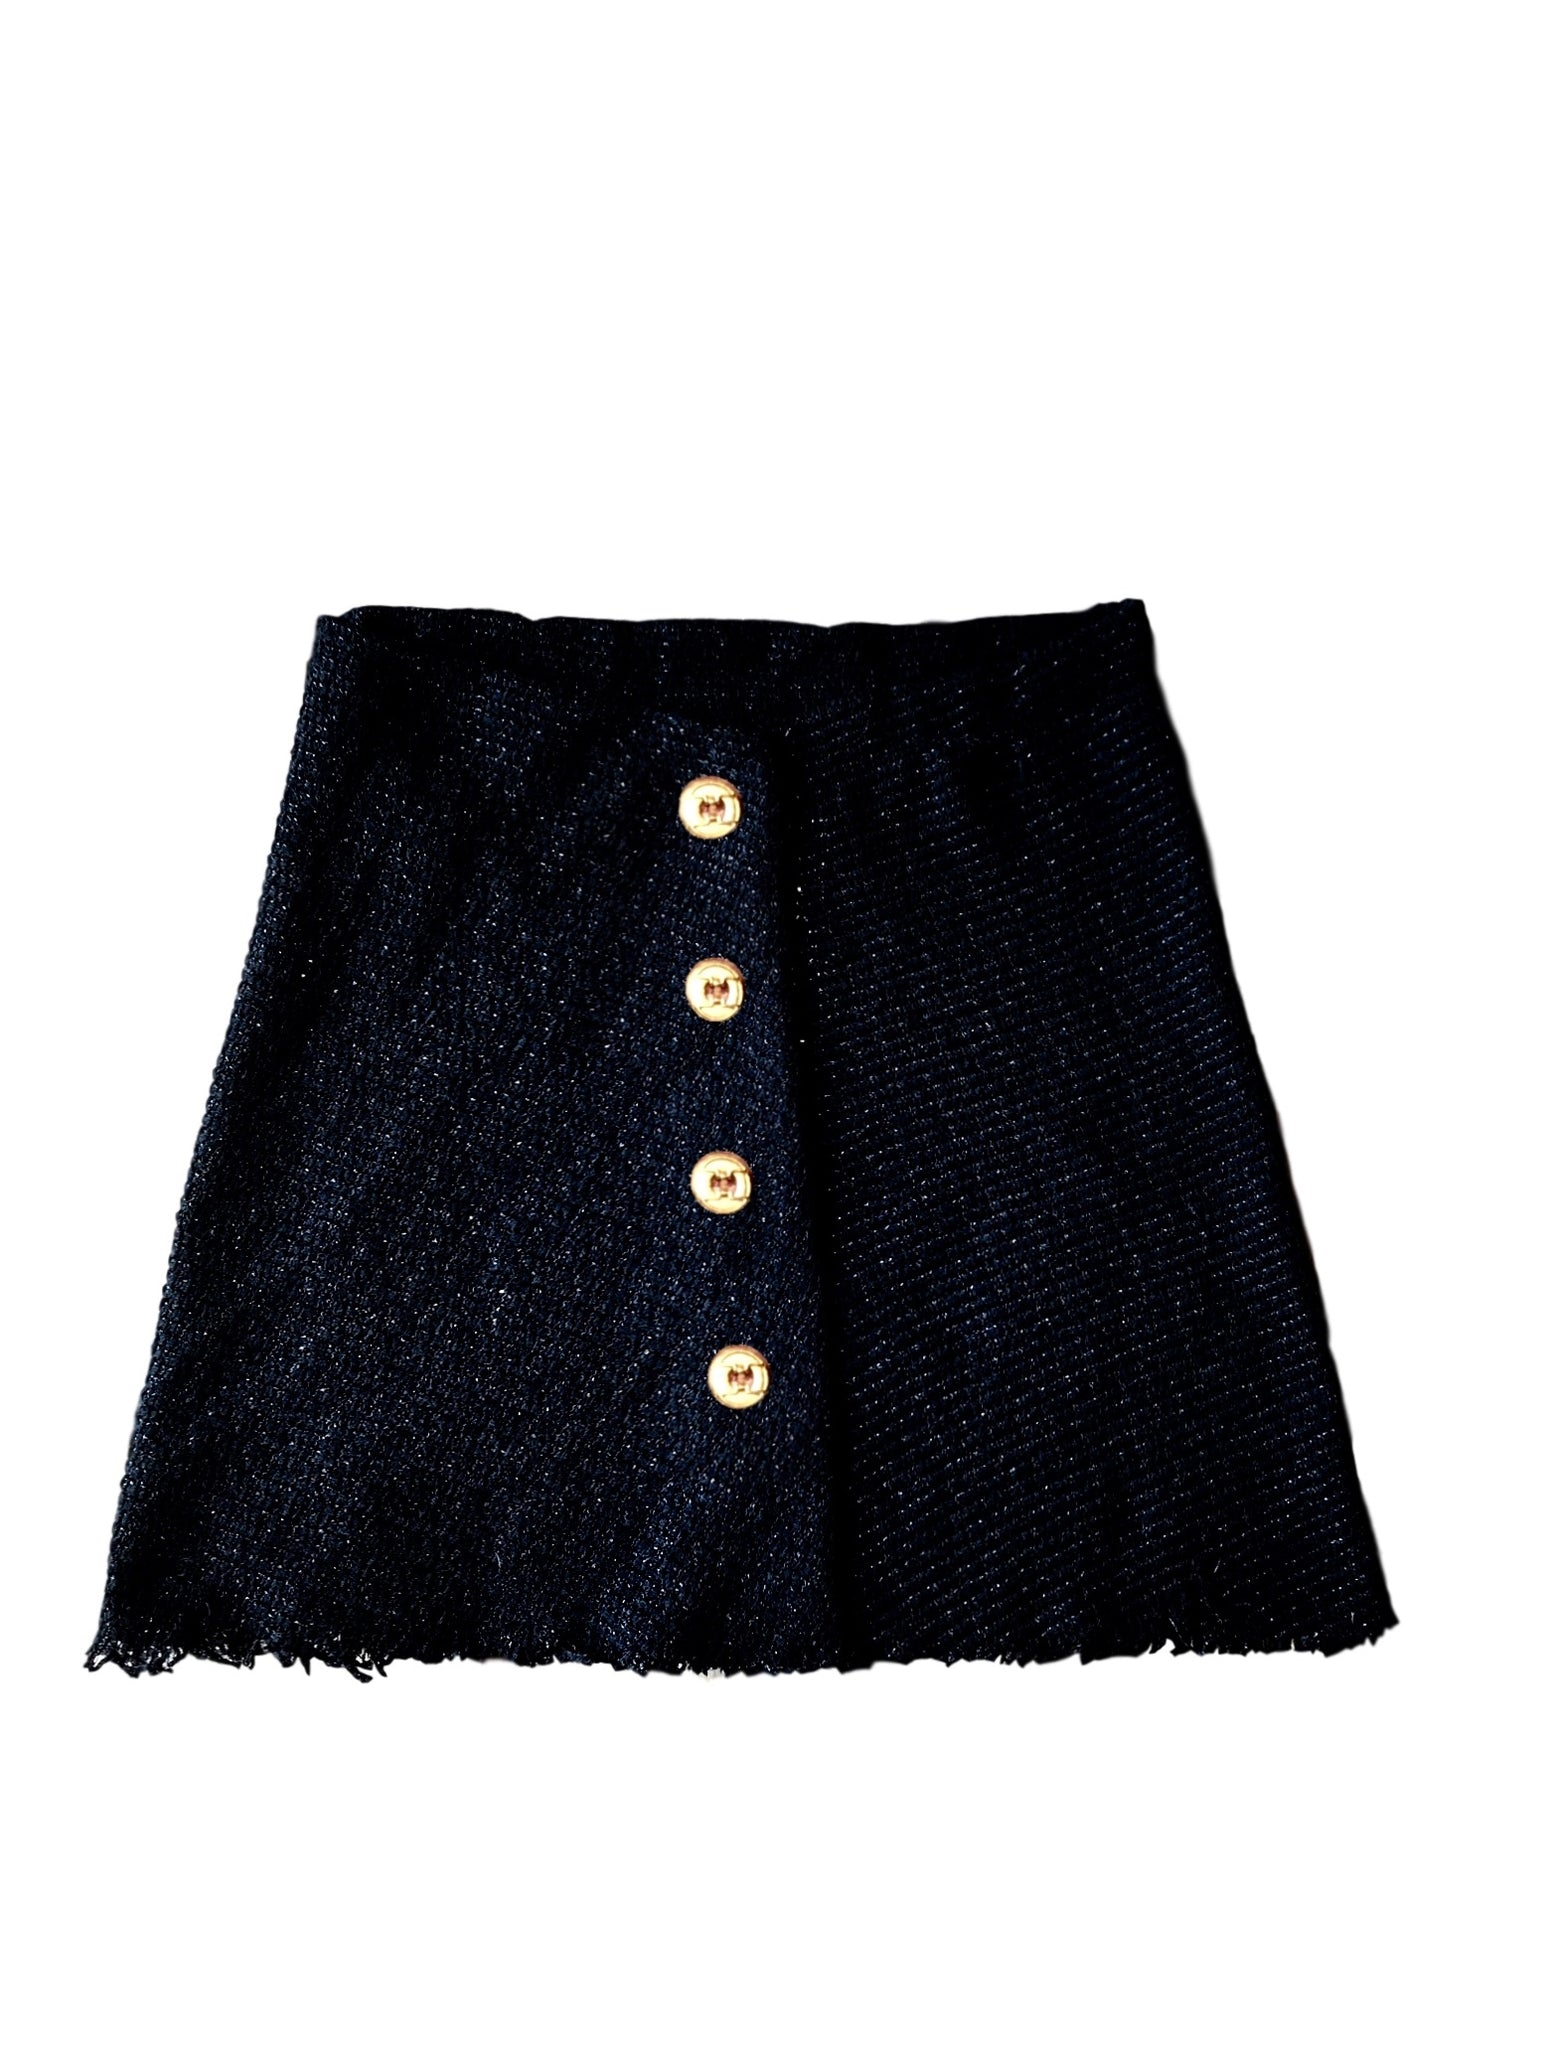 COCO Coverup Skirt